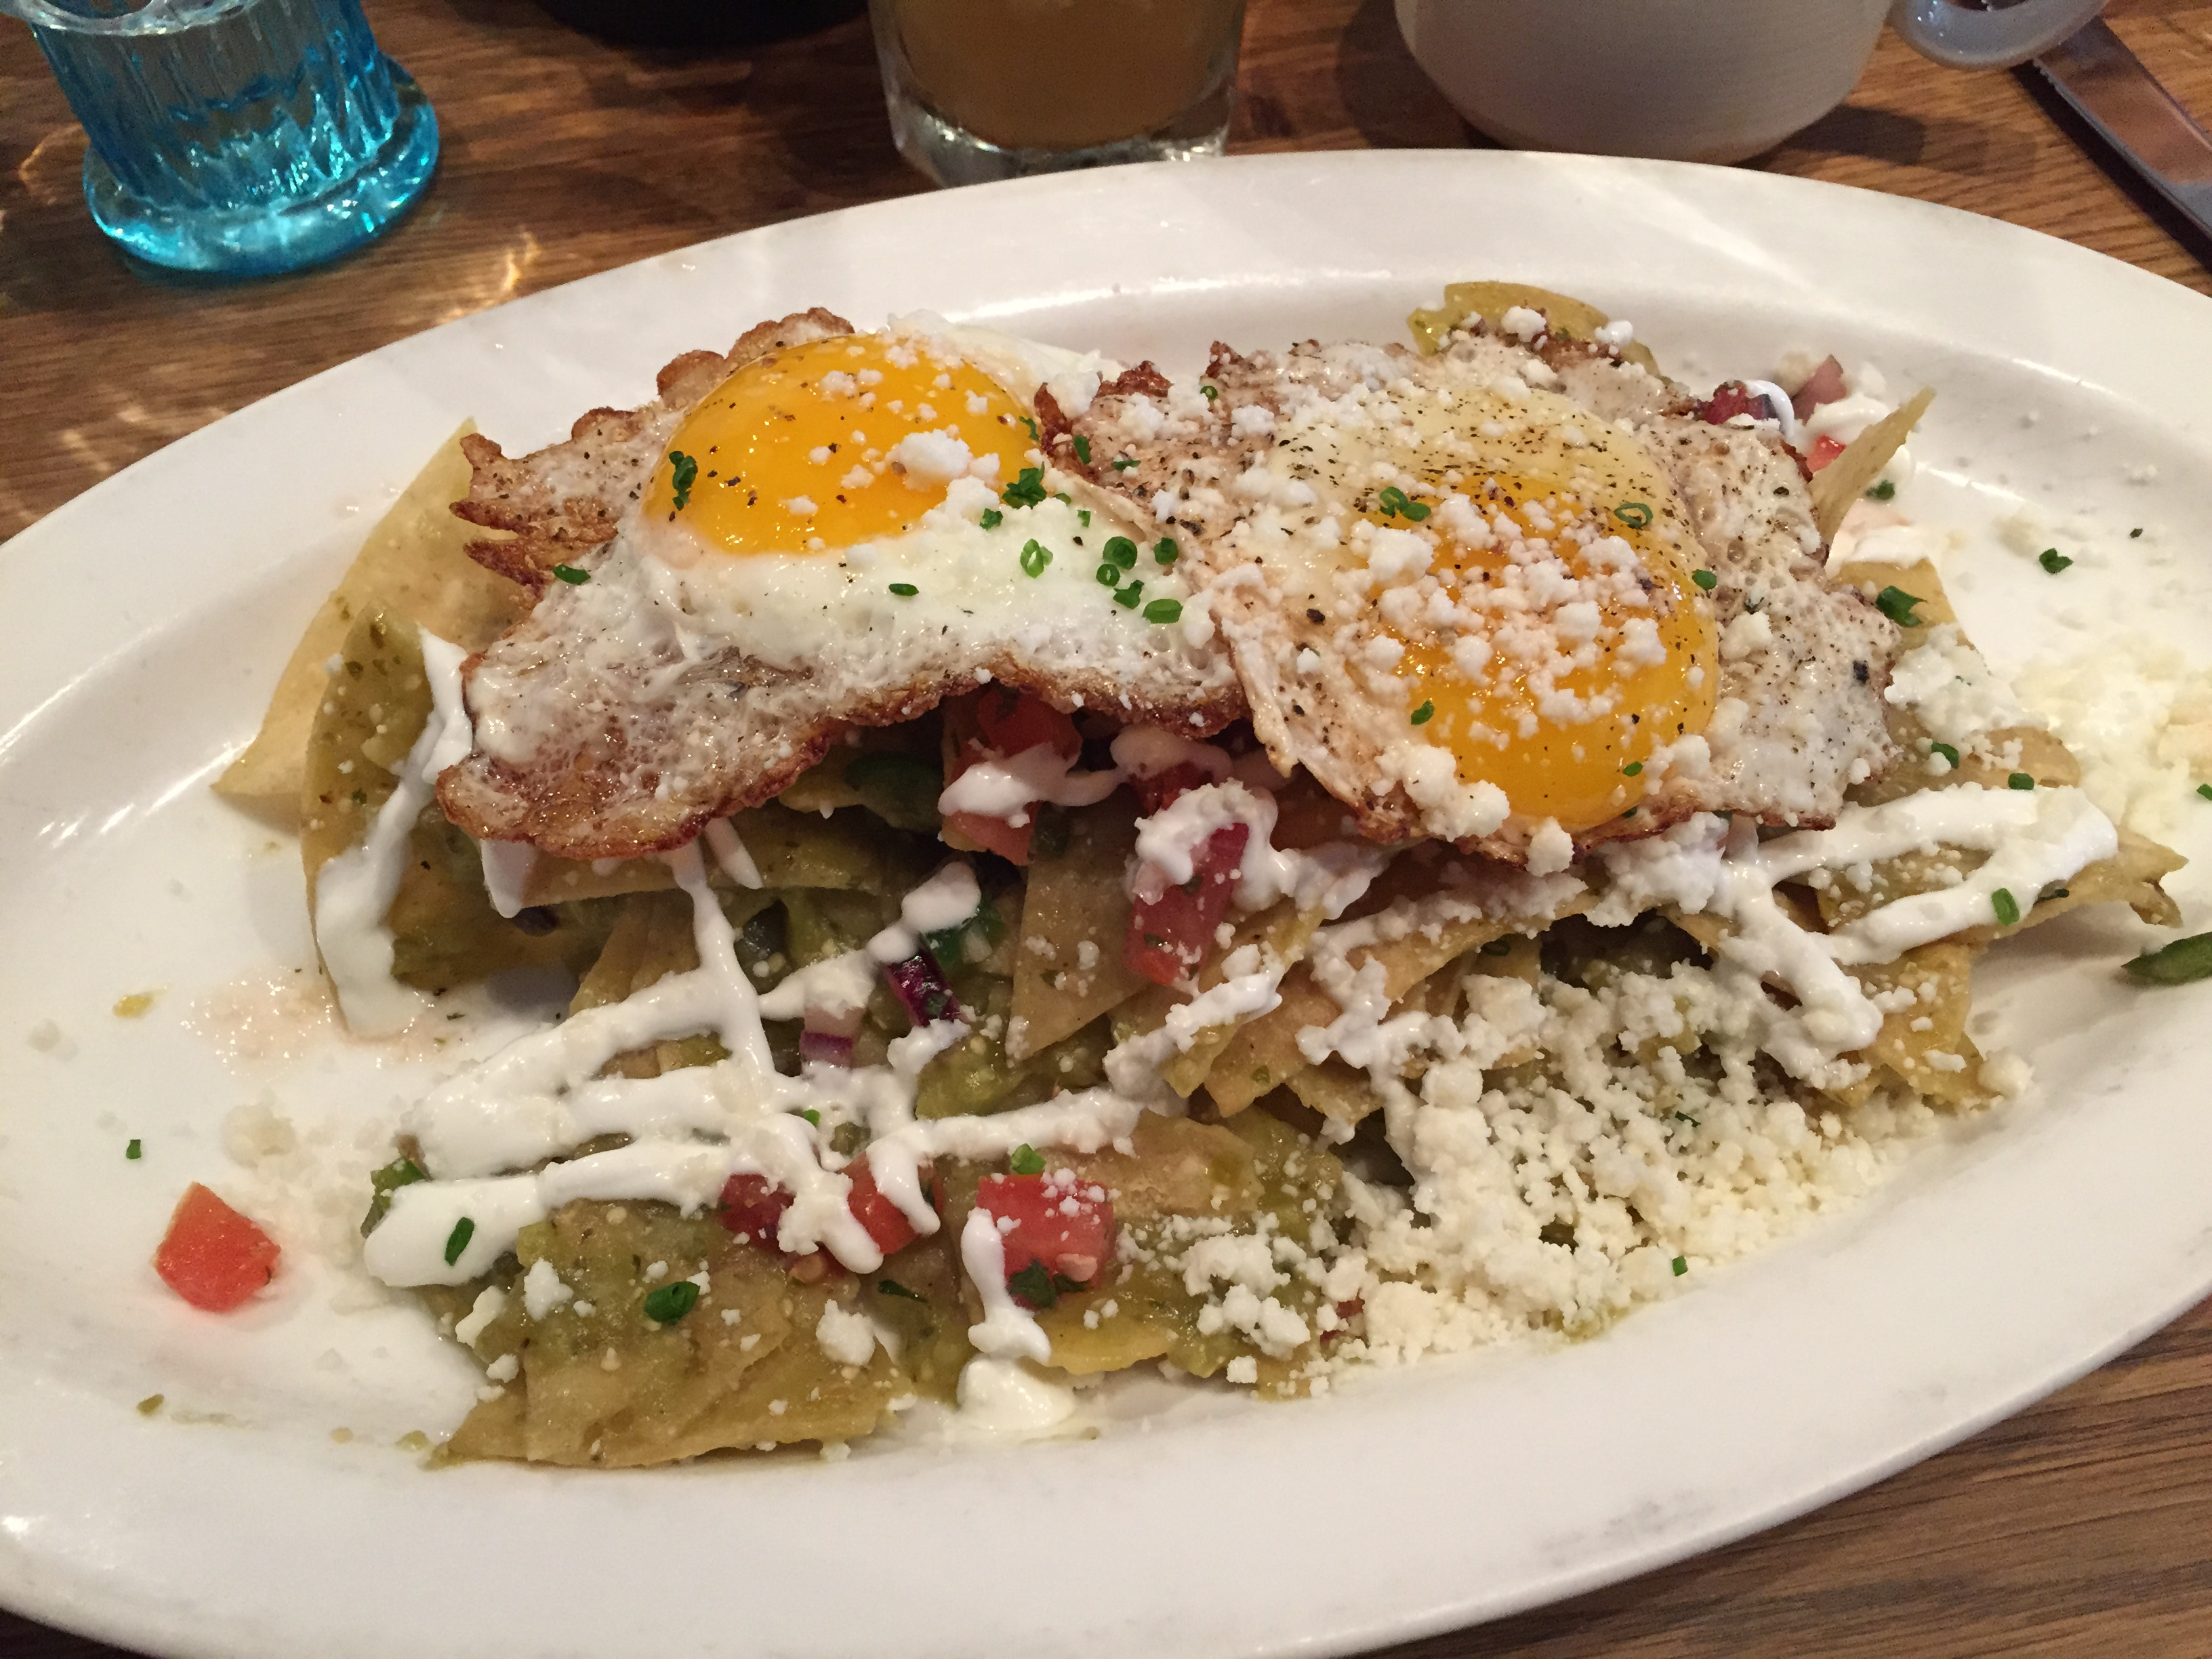 Chilaquiles, with spicy salsa verde